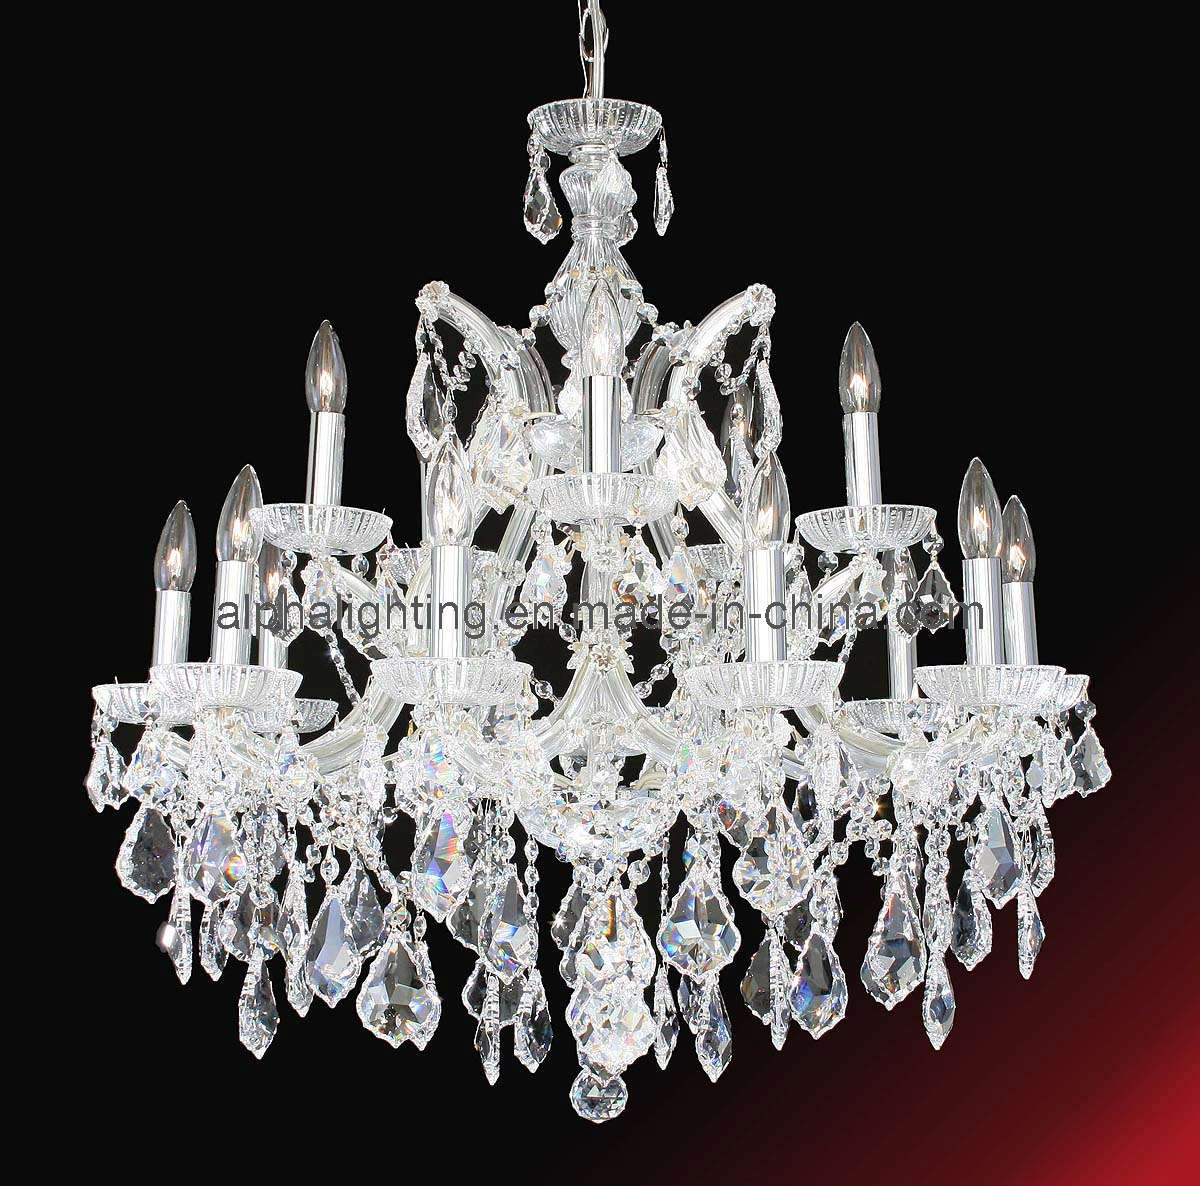 China Beauty Modern Crystal Chandelier Lamp Am2116 13 China With Regard To Beautiful Chandelier (View 15 of 15)